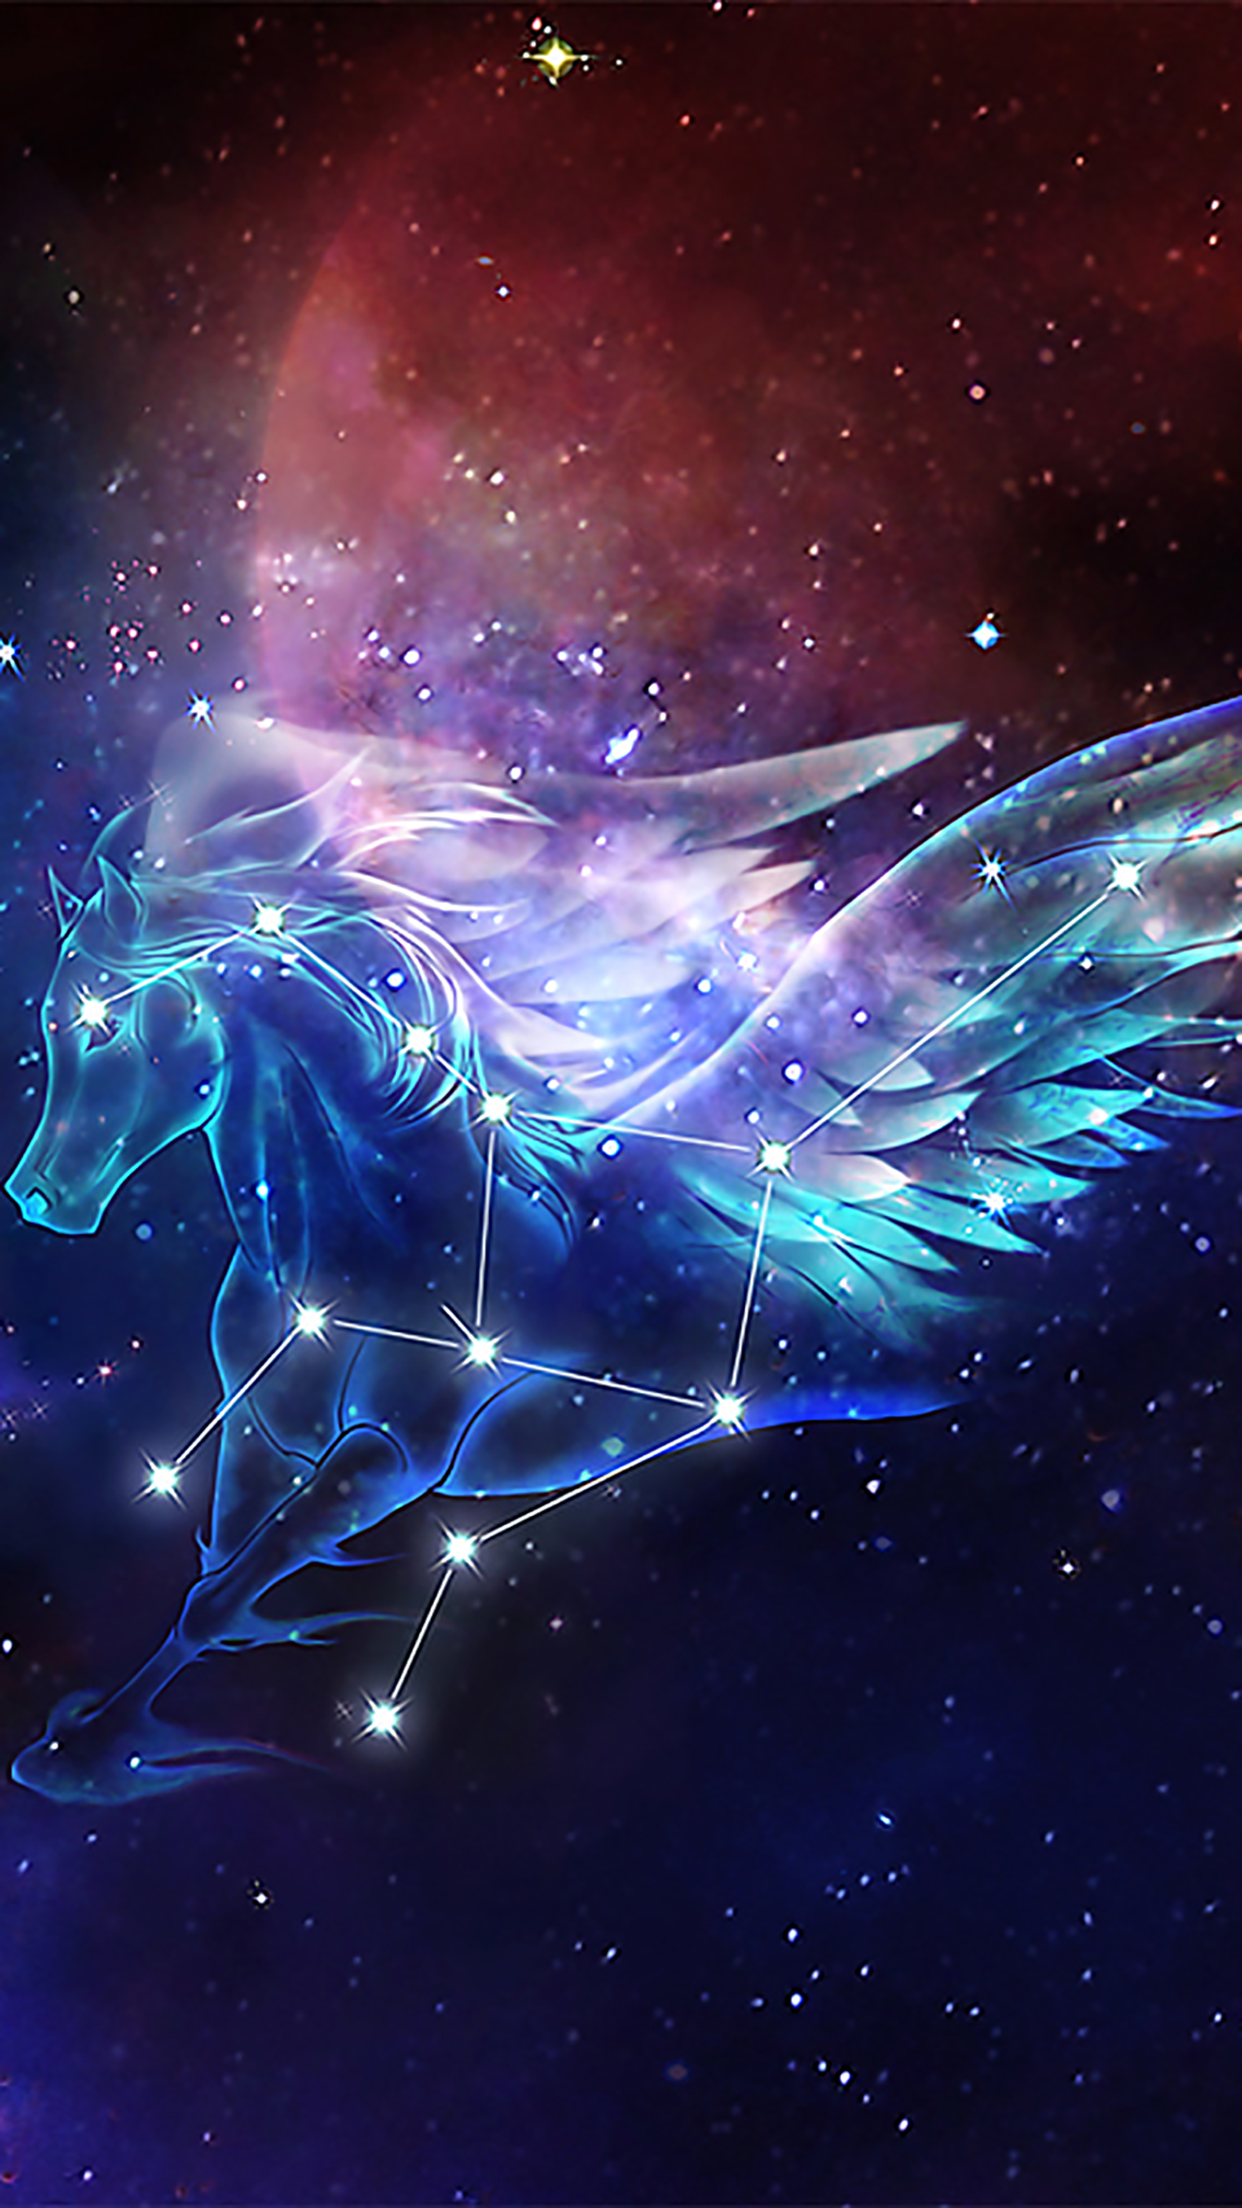 Saint Seiya Constellation 3Wallpapers iPhone Parallax Saint Seya : Constellation